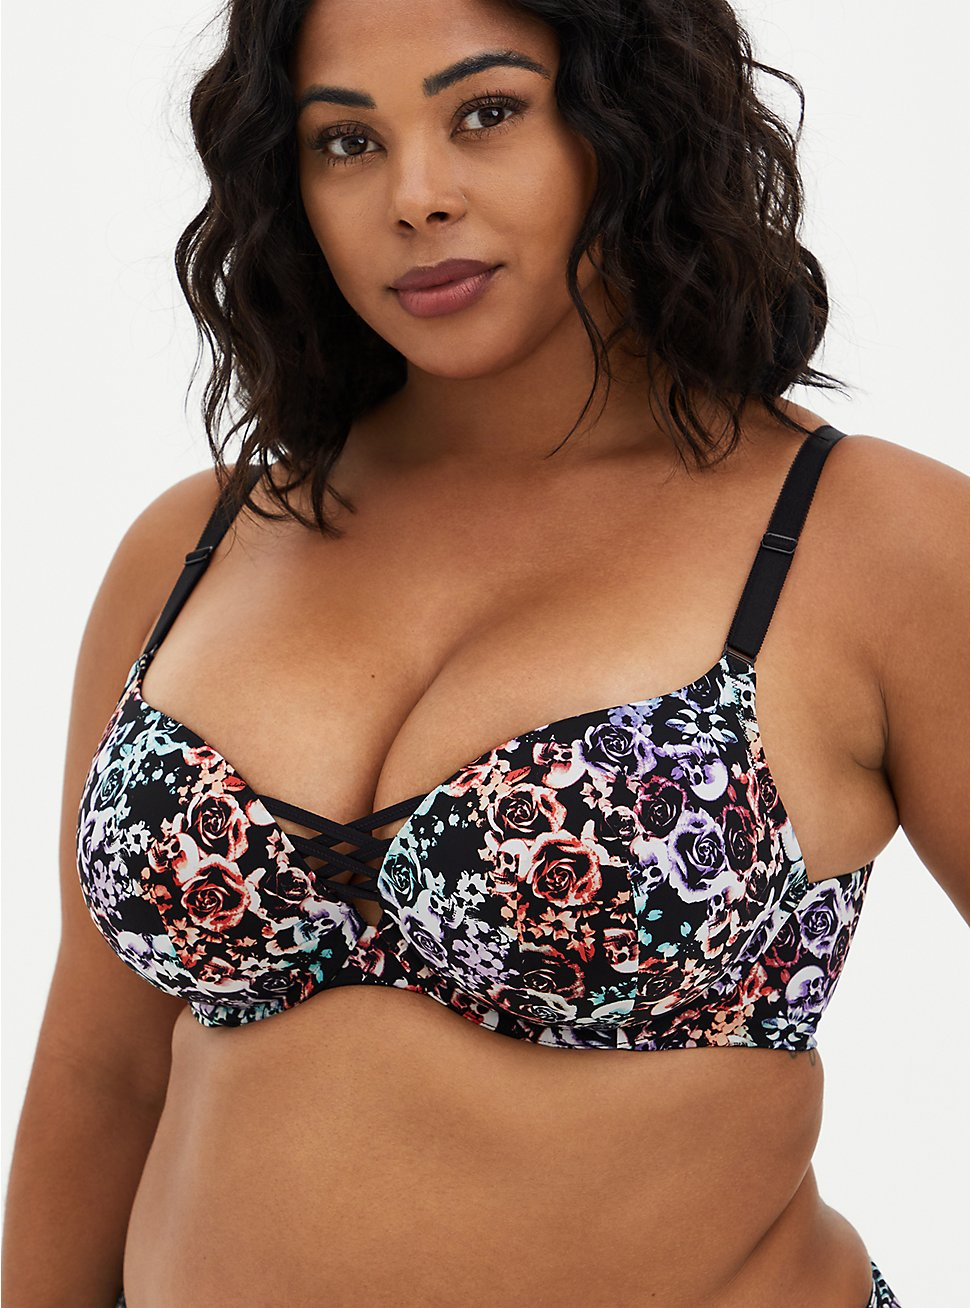 XO Push-Up Plunge Bra - Microfiber Floral + Skulls with 360° Back Smoothing™, , fitModel1-hires